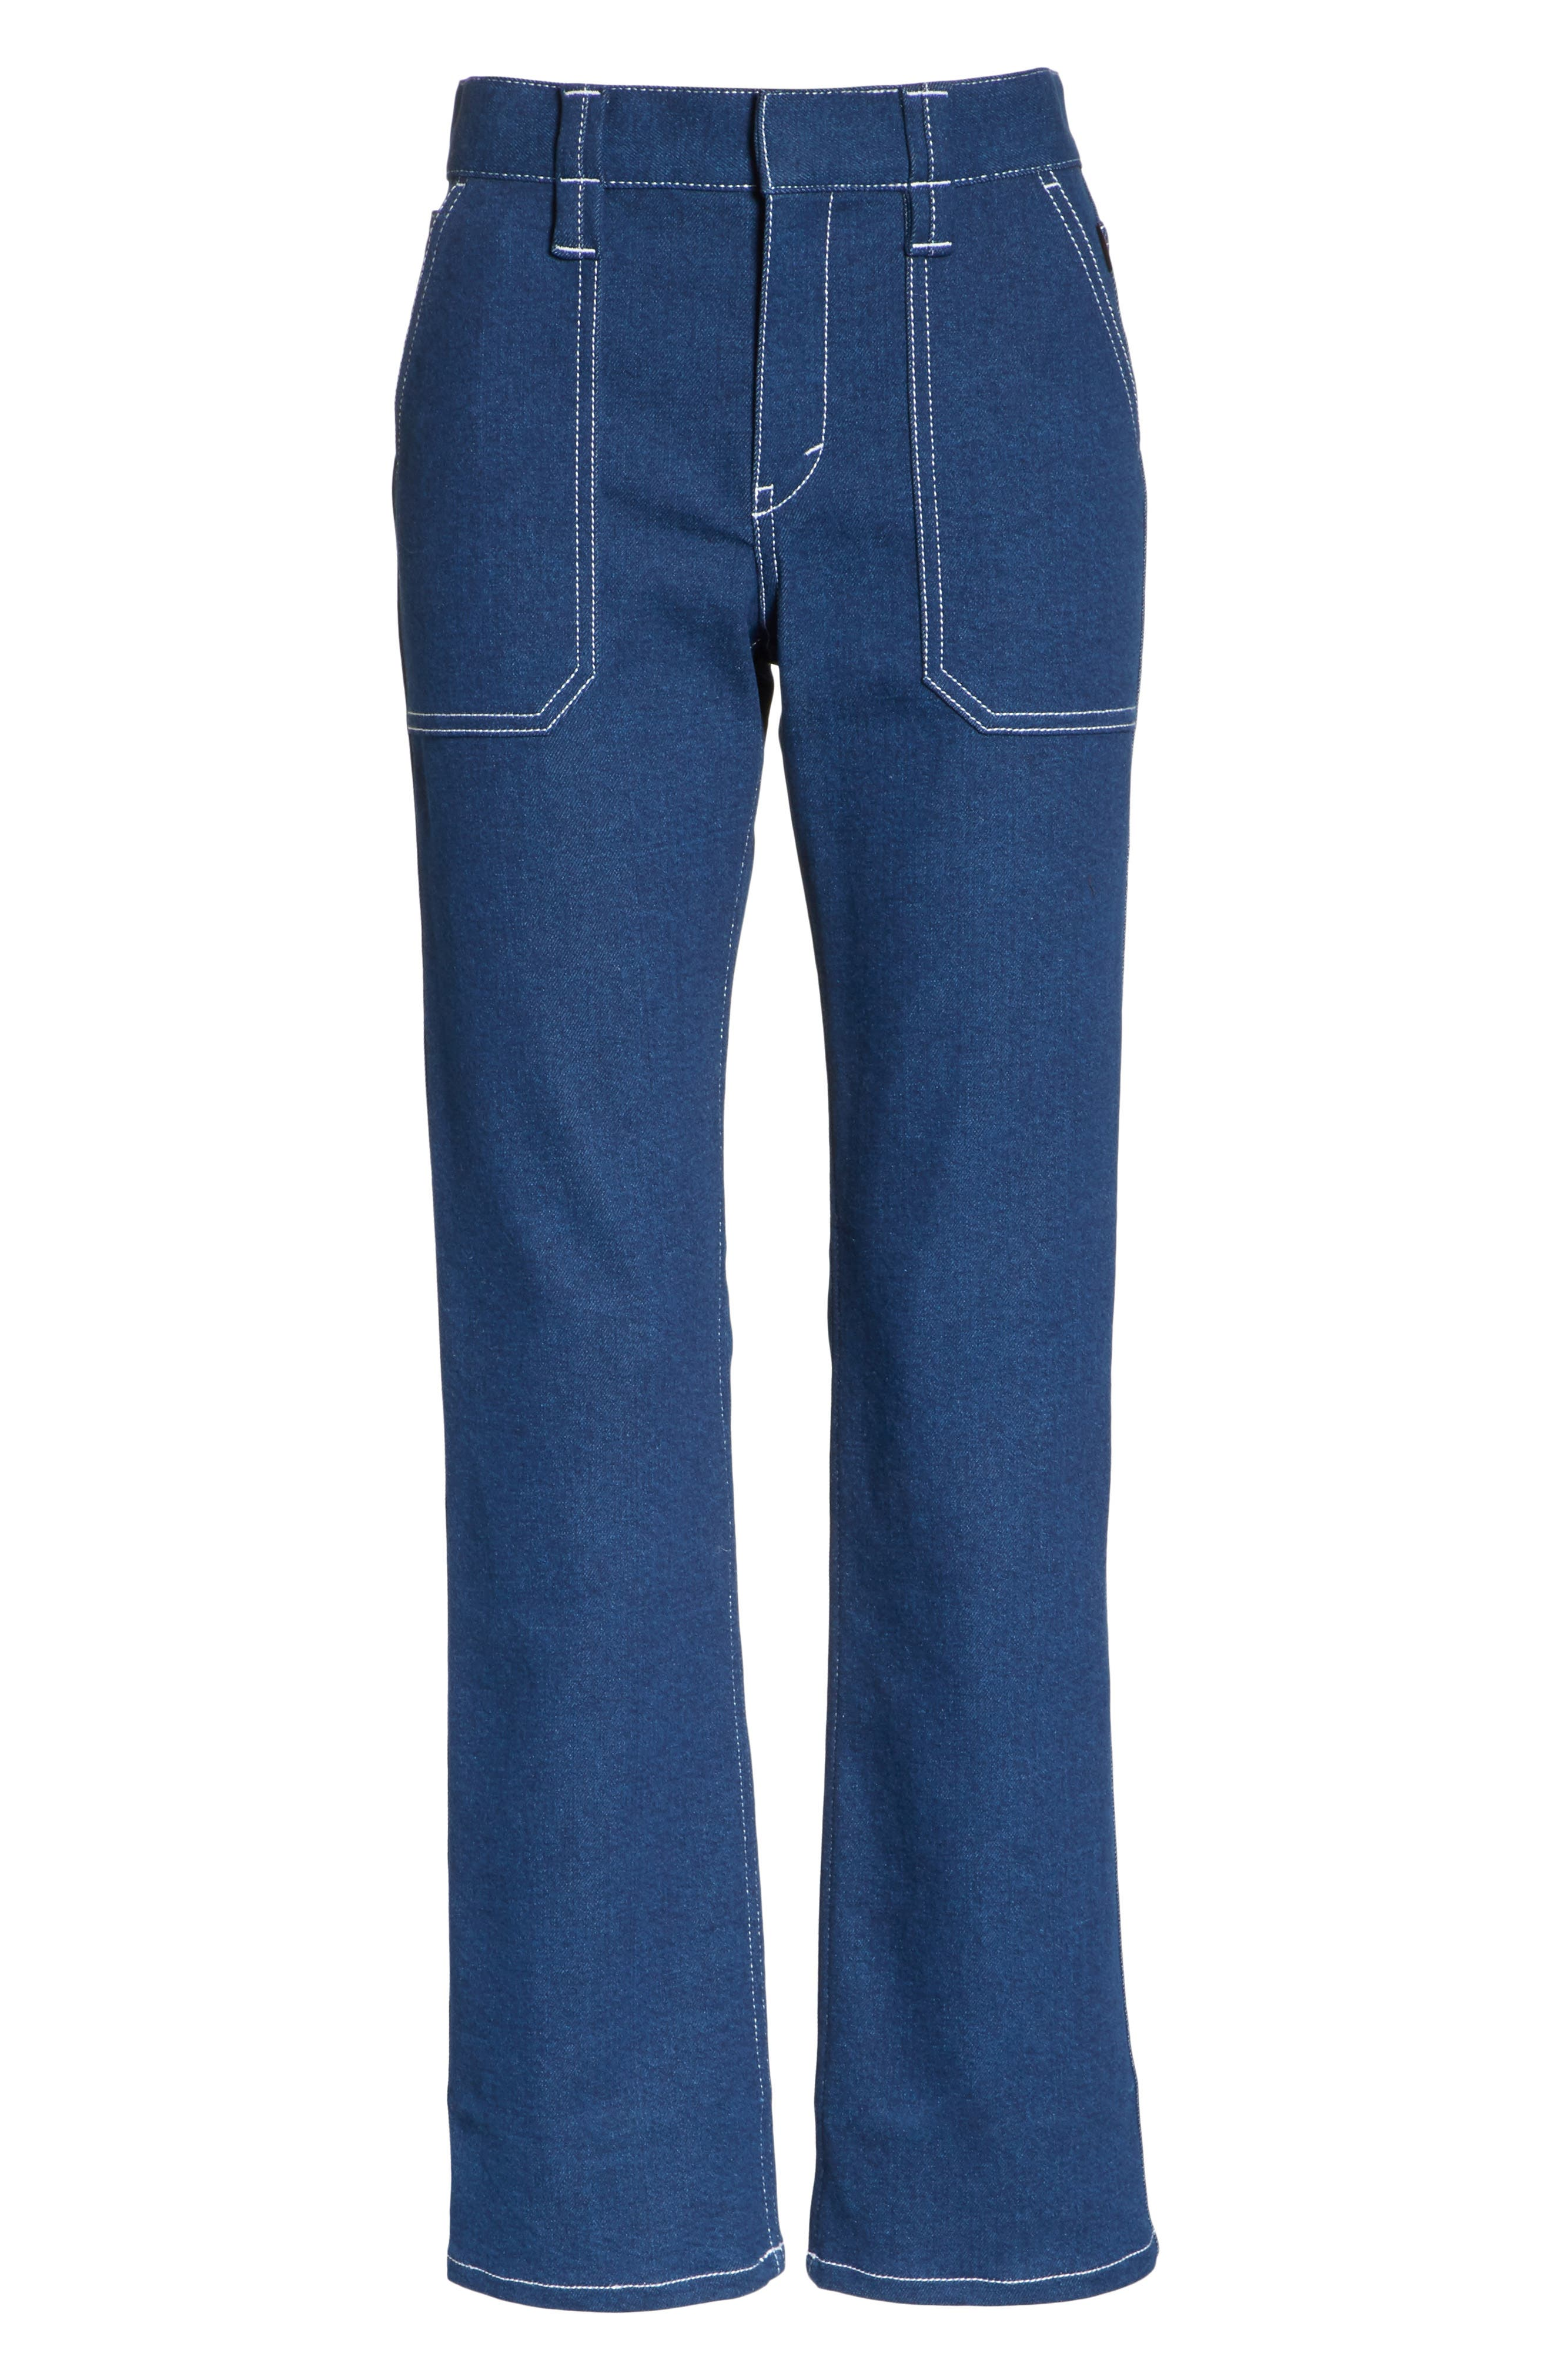 Contrast Circle Stitch Jeans,                             Alternate thumbnail 6, color,                             Ultramarine